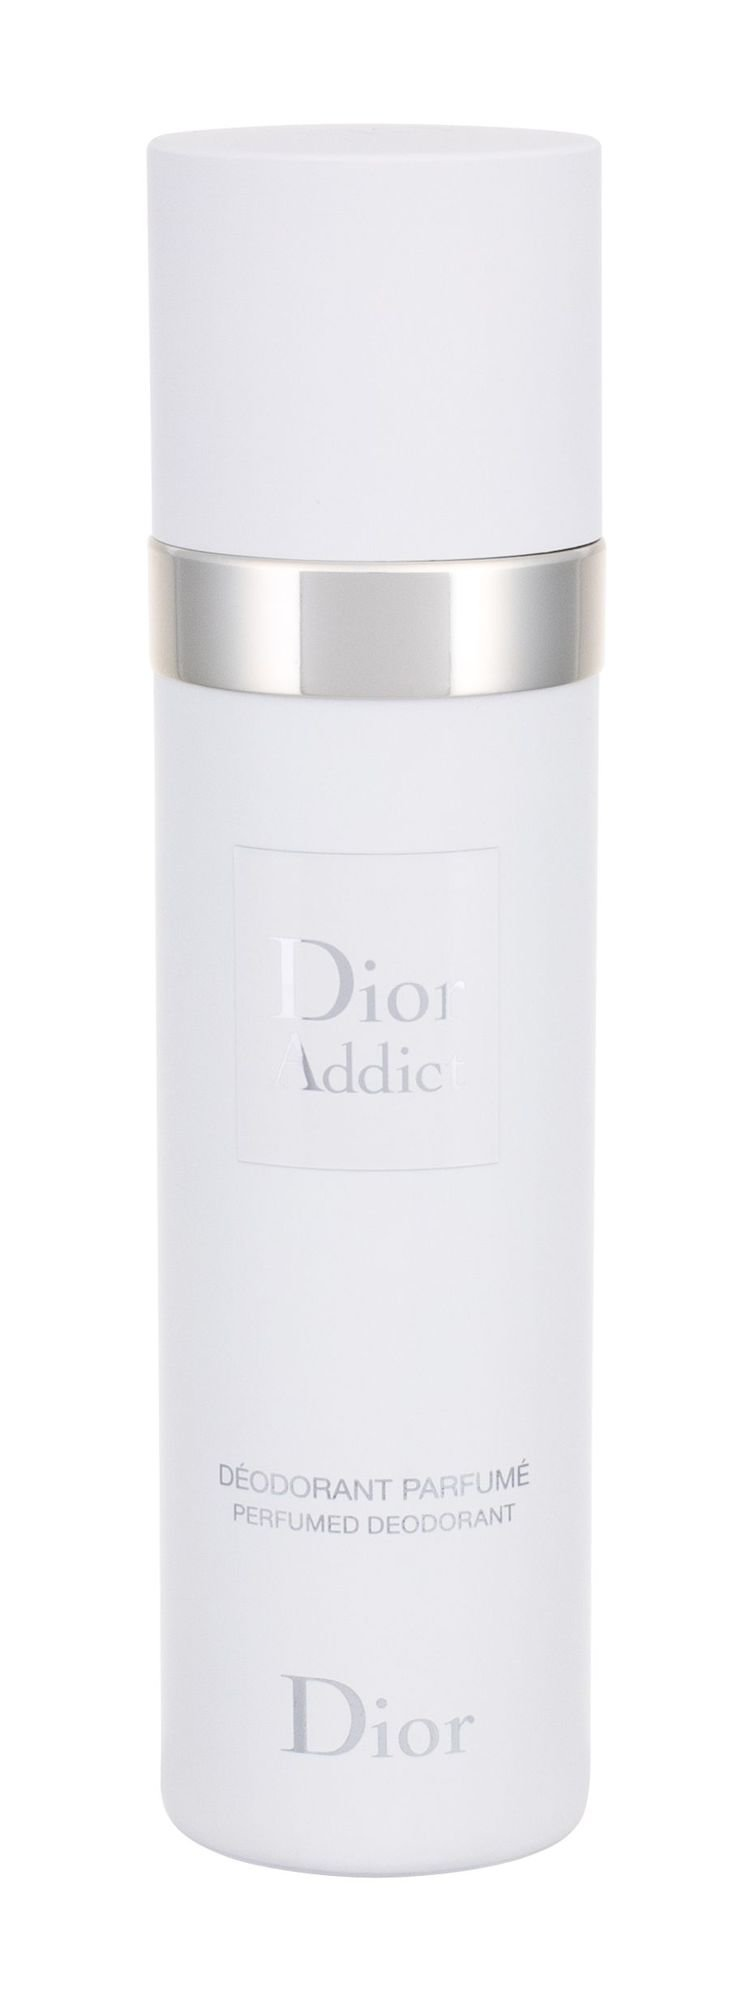 Christian Dior Addict, Deodorant 100ml